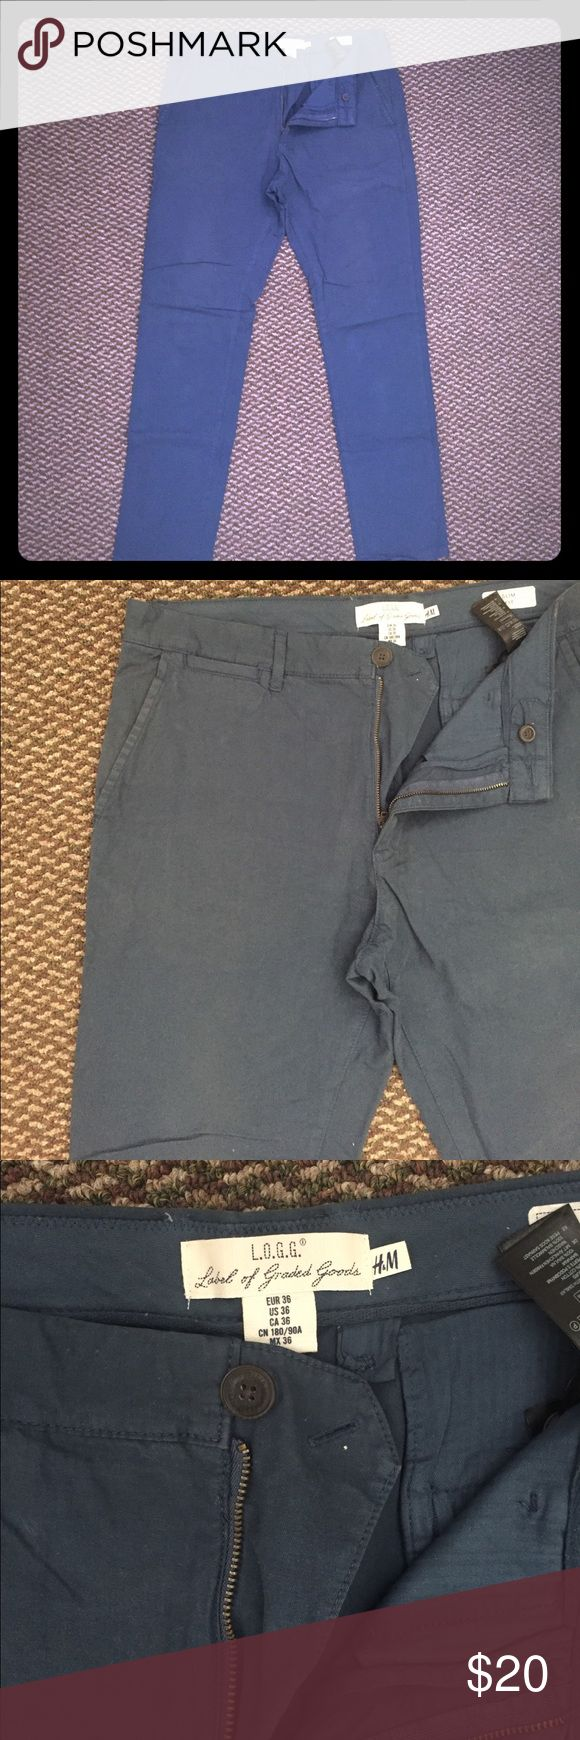 H&M Blue Chino Pants Sz. 36 Used Chino Pant H&M Pants Chinos & Khakis